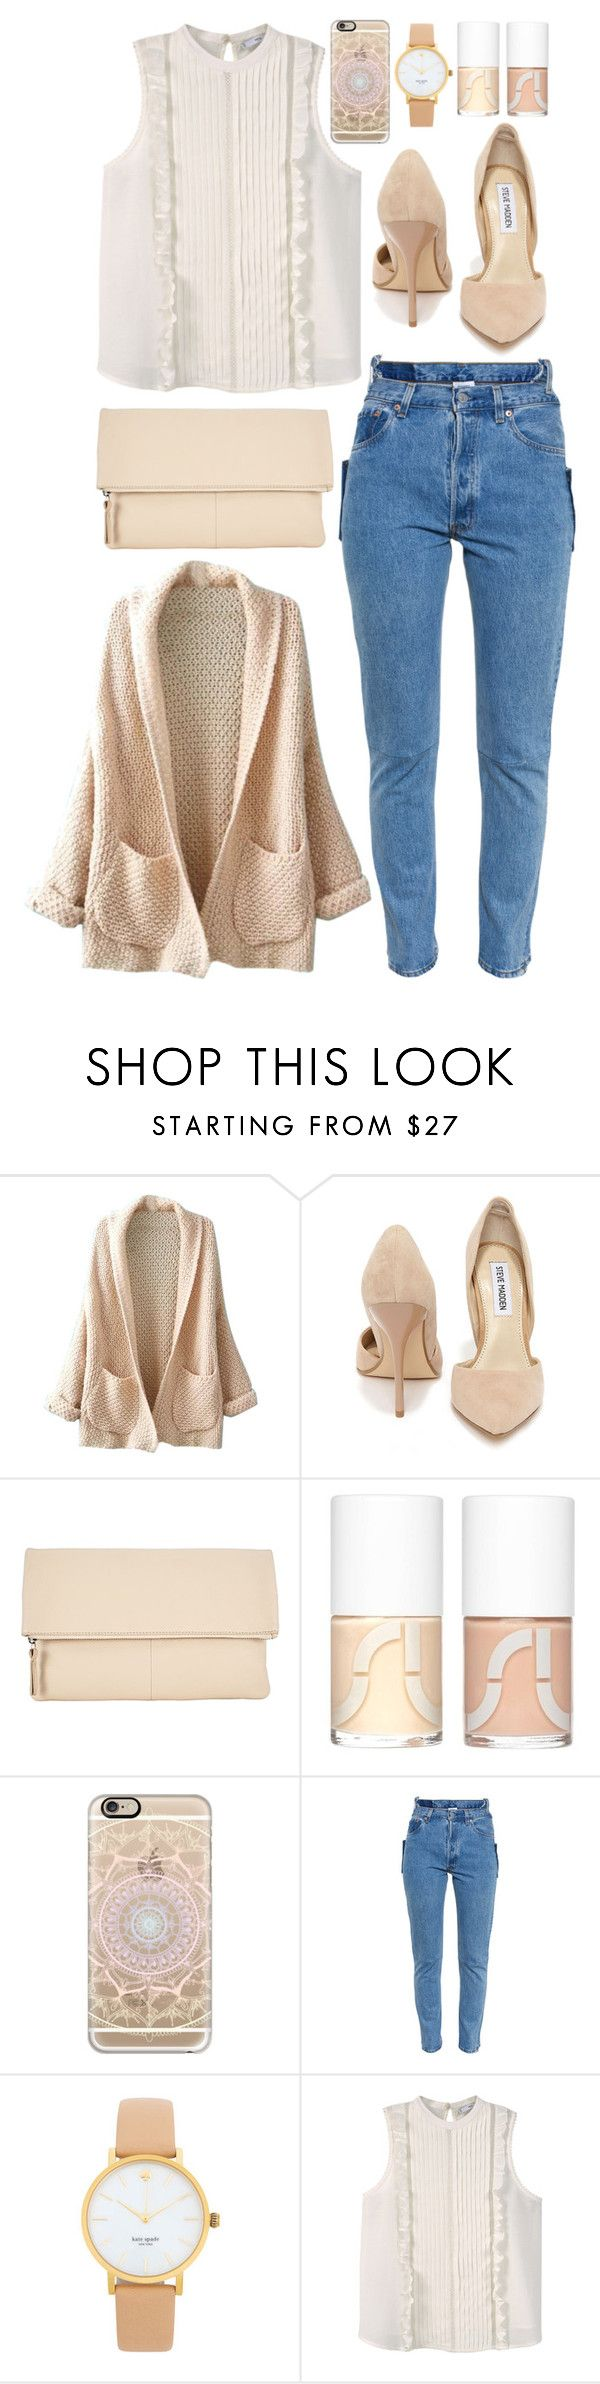 """""""pink outfit"""" by enjoyrosa ❤ liked on Polyvore featuring WithChic, Steve Madden, Kin by John Lewis, Uslu Airlines, Casetify, Vetements, Kate Spade and MANGO"""